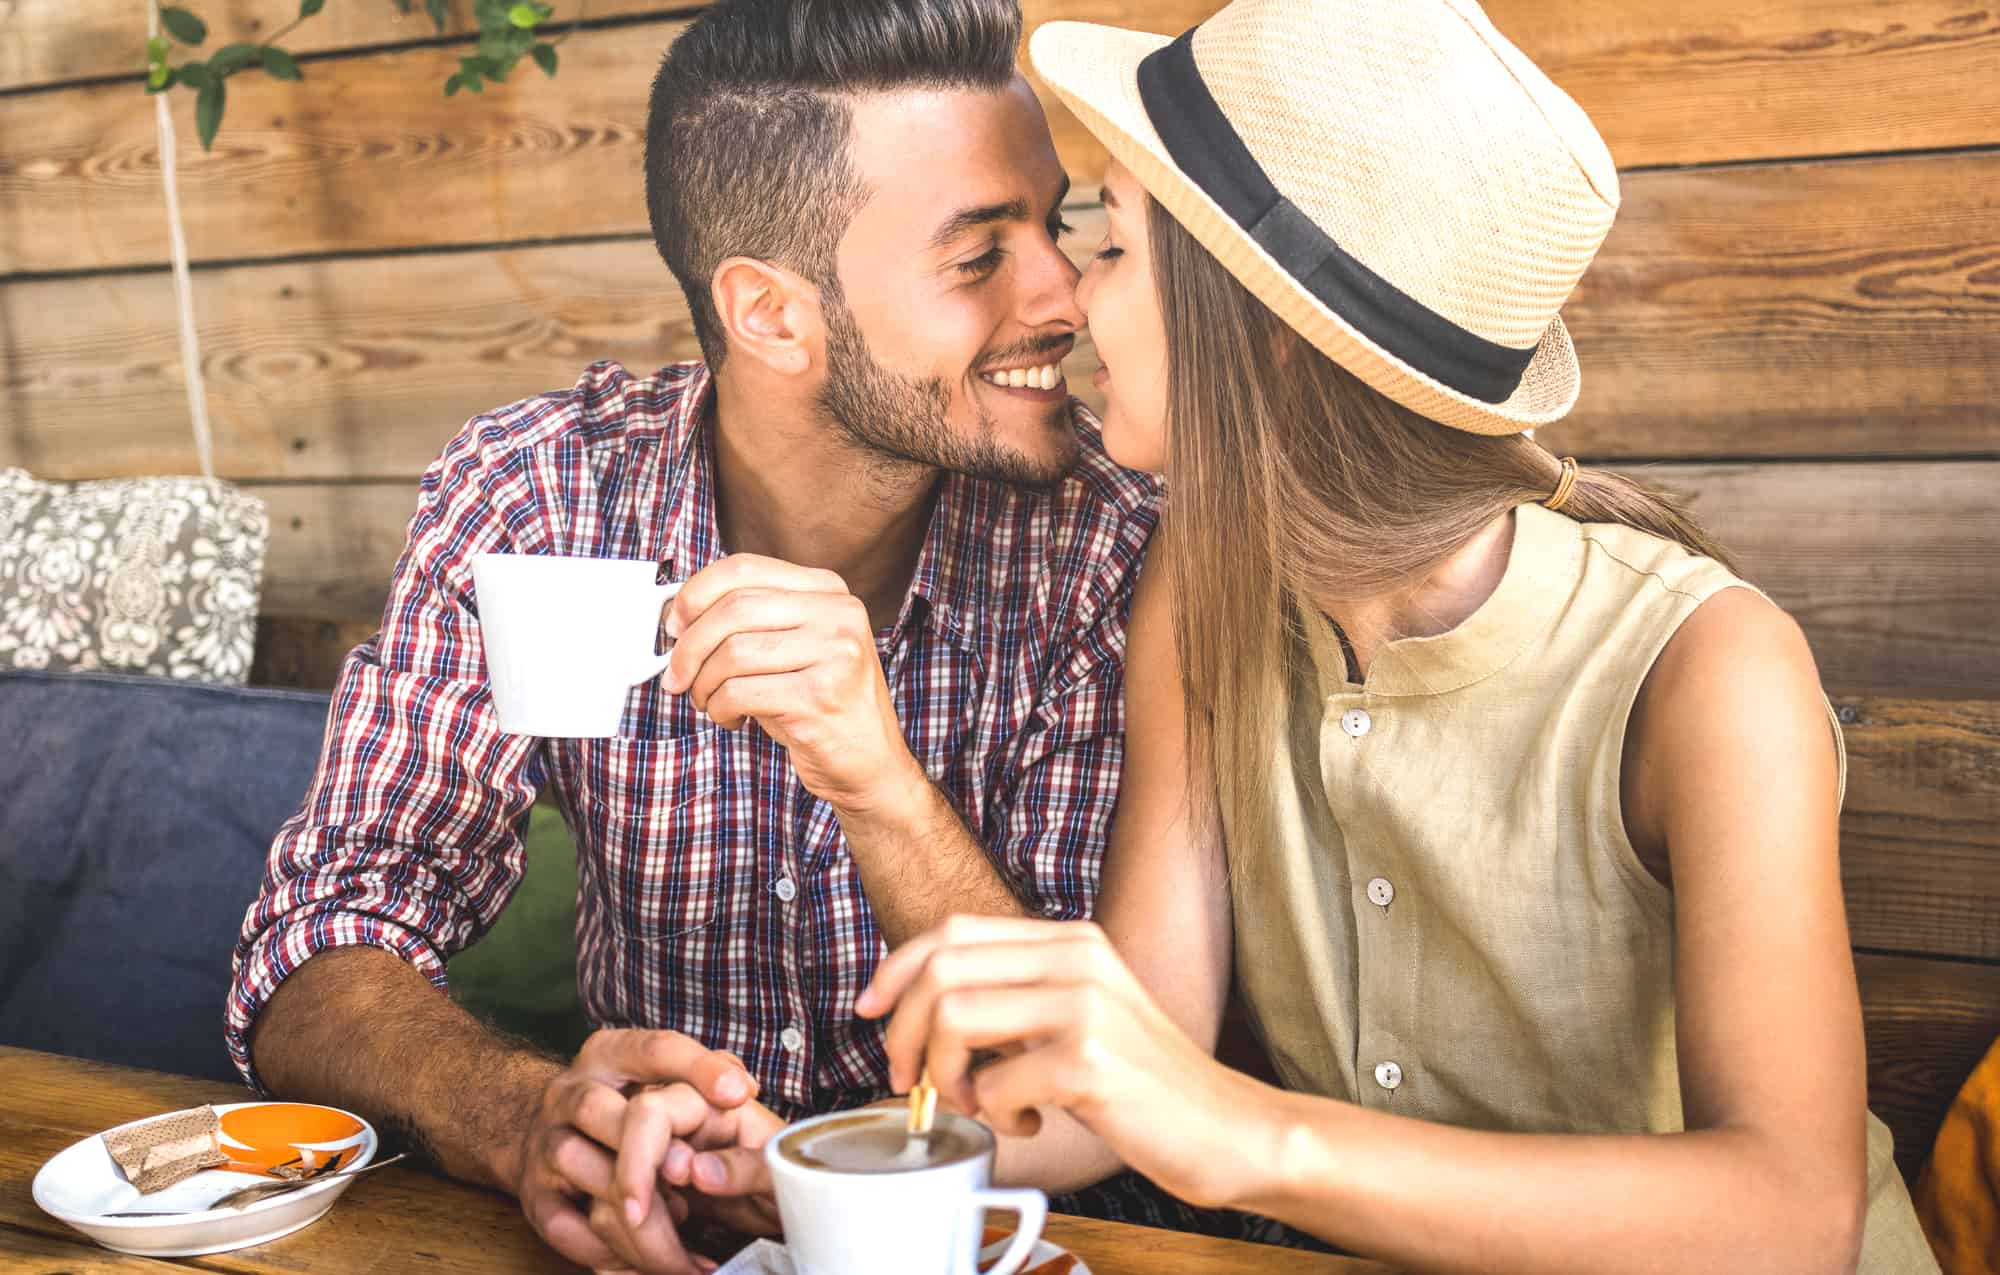 How To Make Your Friends With Benefits Fall For You - TryPair